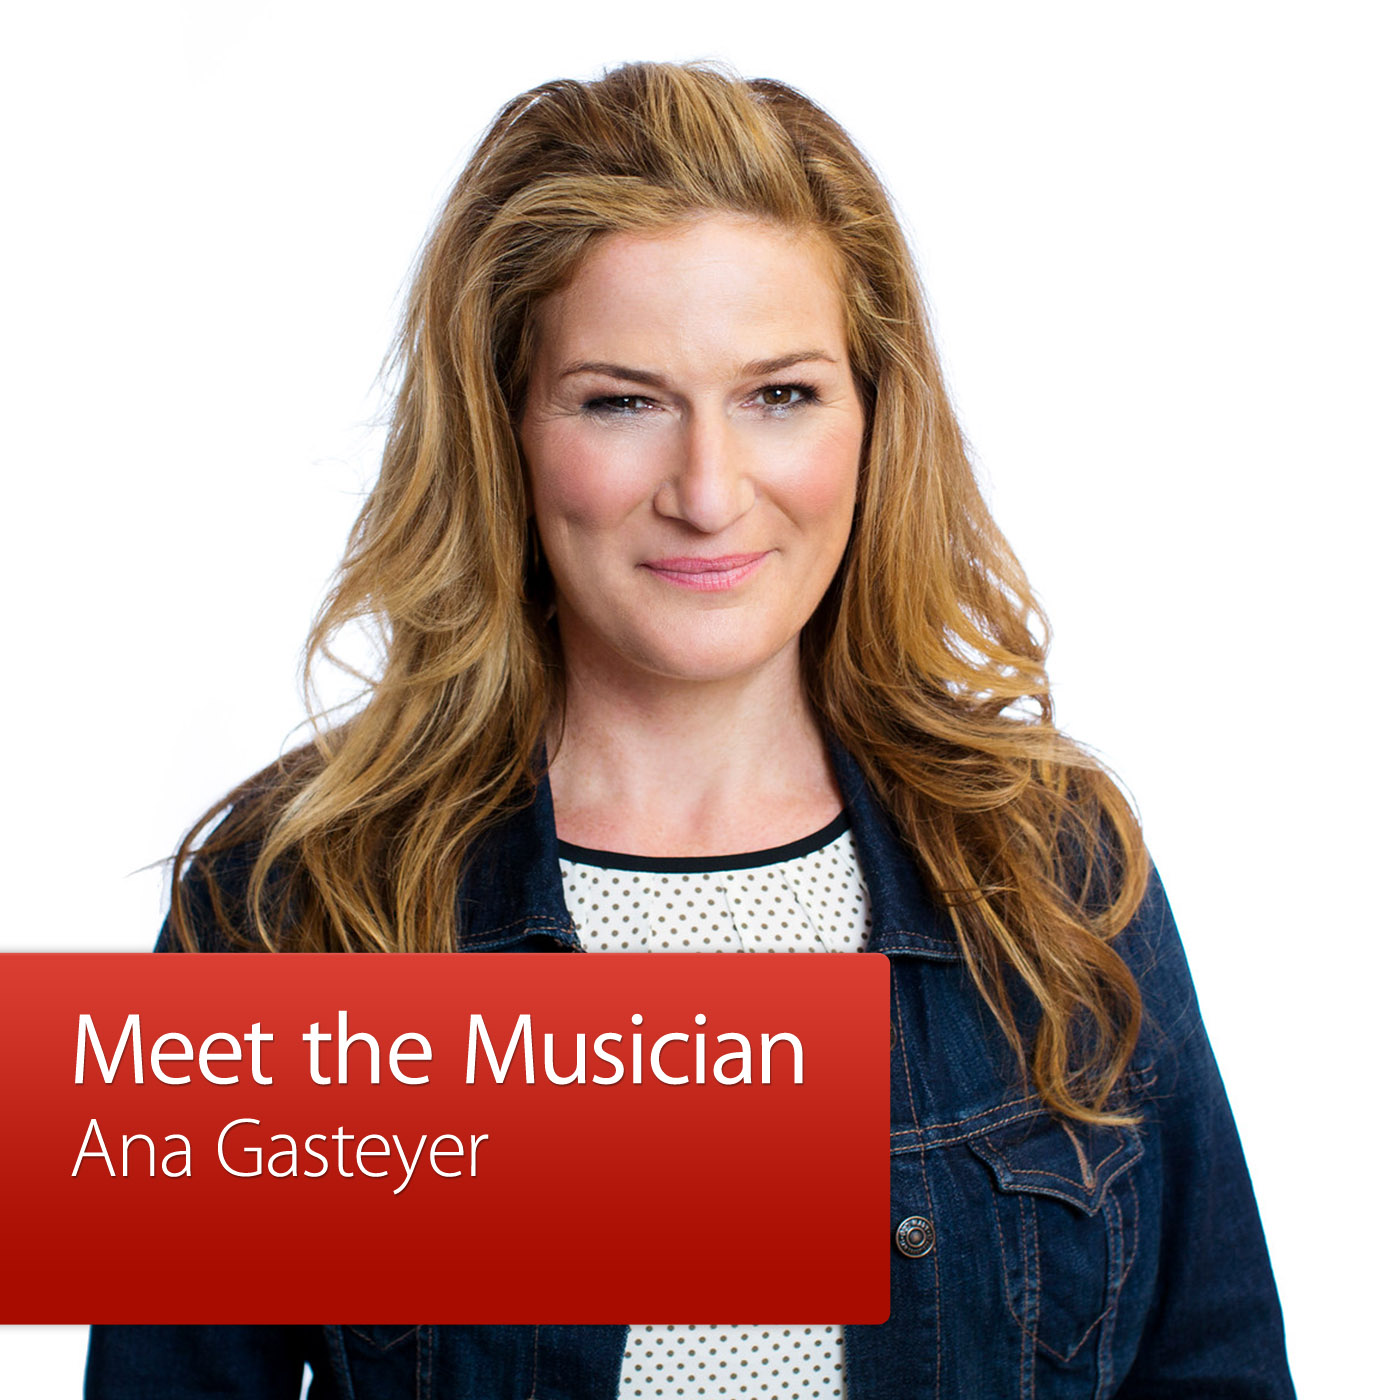 Ana Gasteyer: Meet the Musician